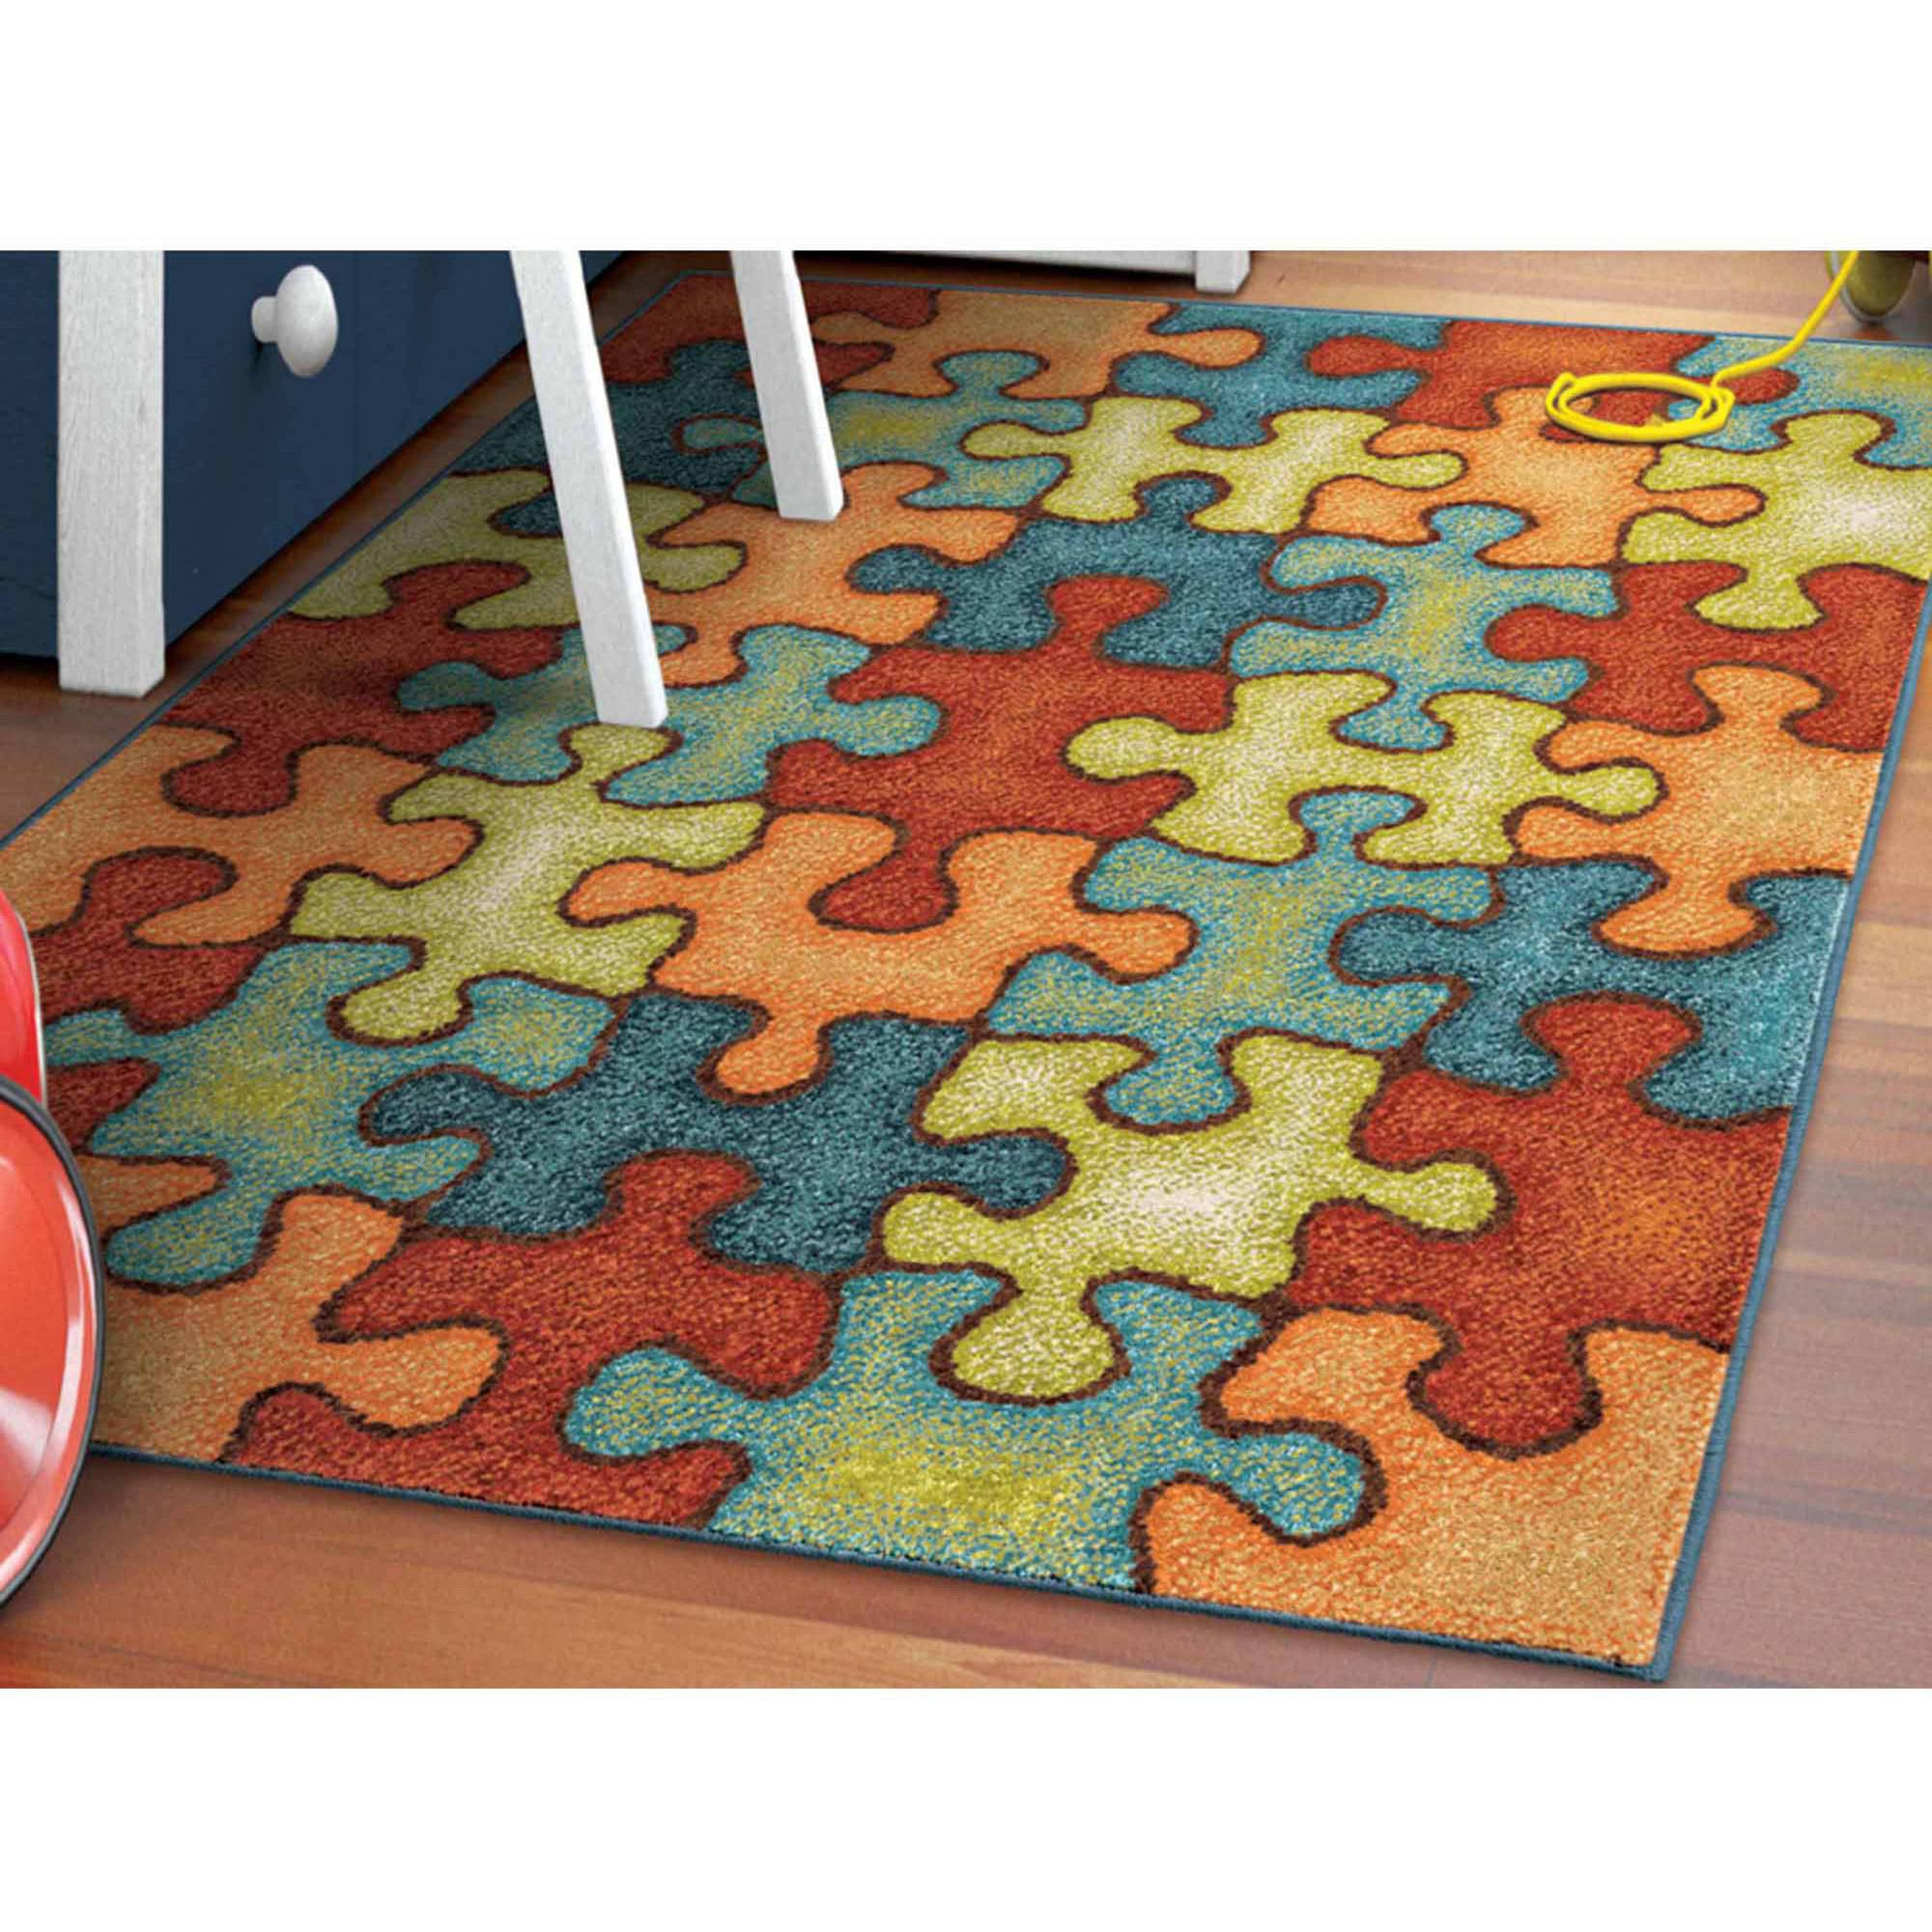 Orian Rugs Perplexed Puzzle Multi-Color Area Rug